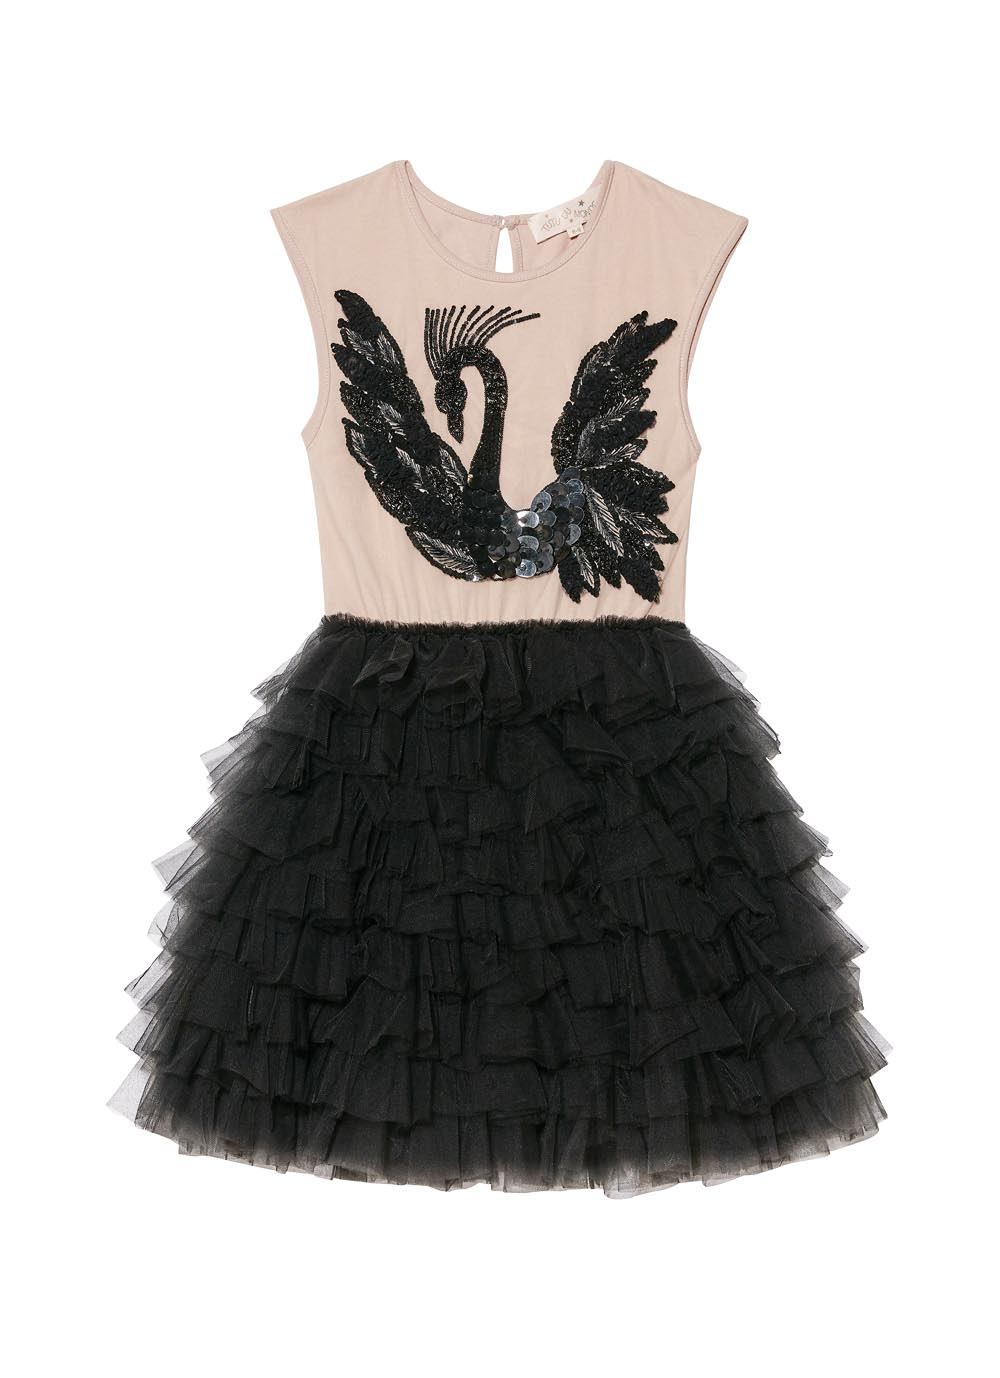 70110c641ca BLACK SWAN TUTU DRESS - NUDE - Welcome to the World of Tutudumonde